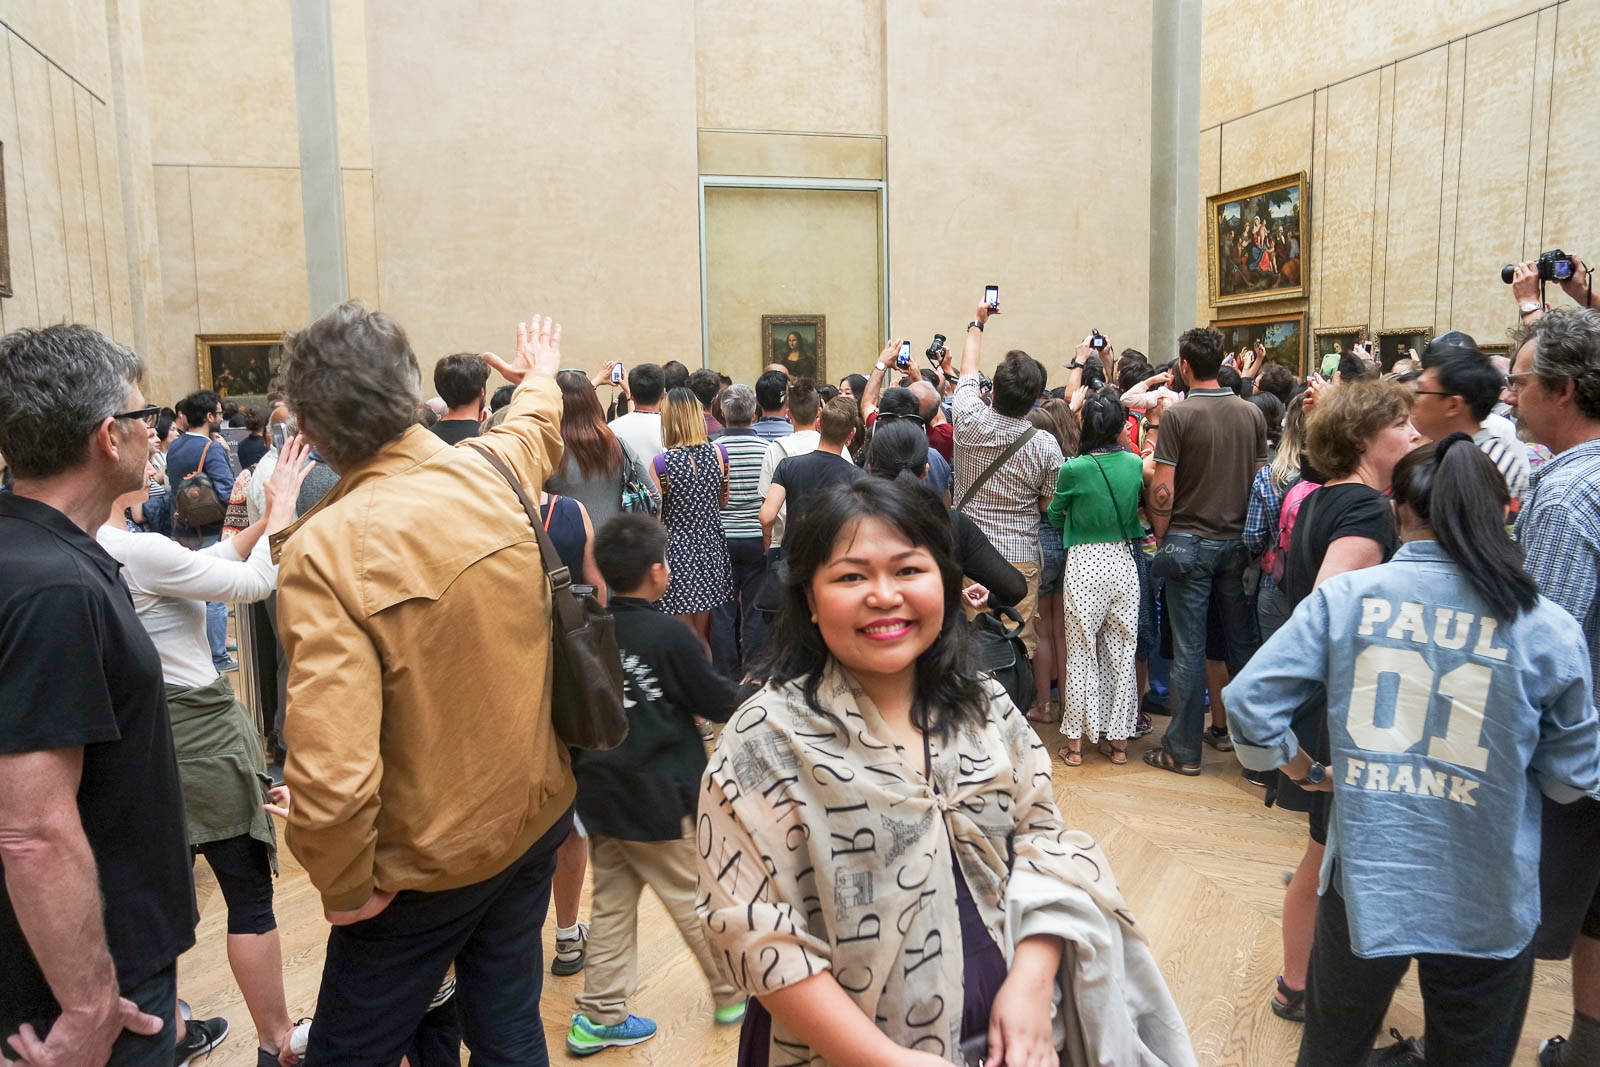 Louvre Mona Lisa Crowd